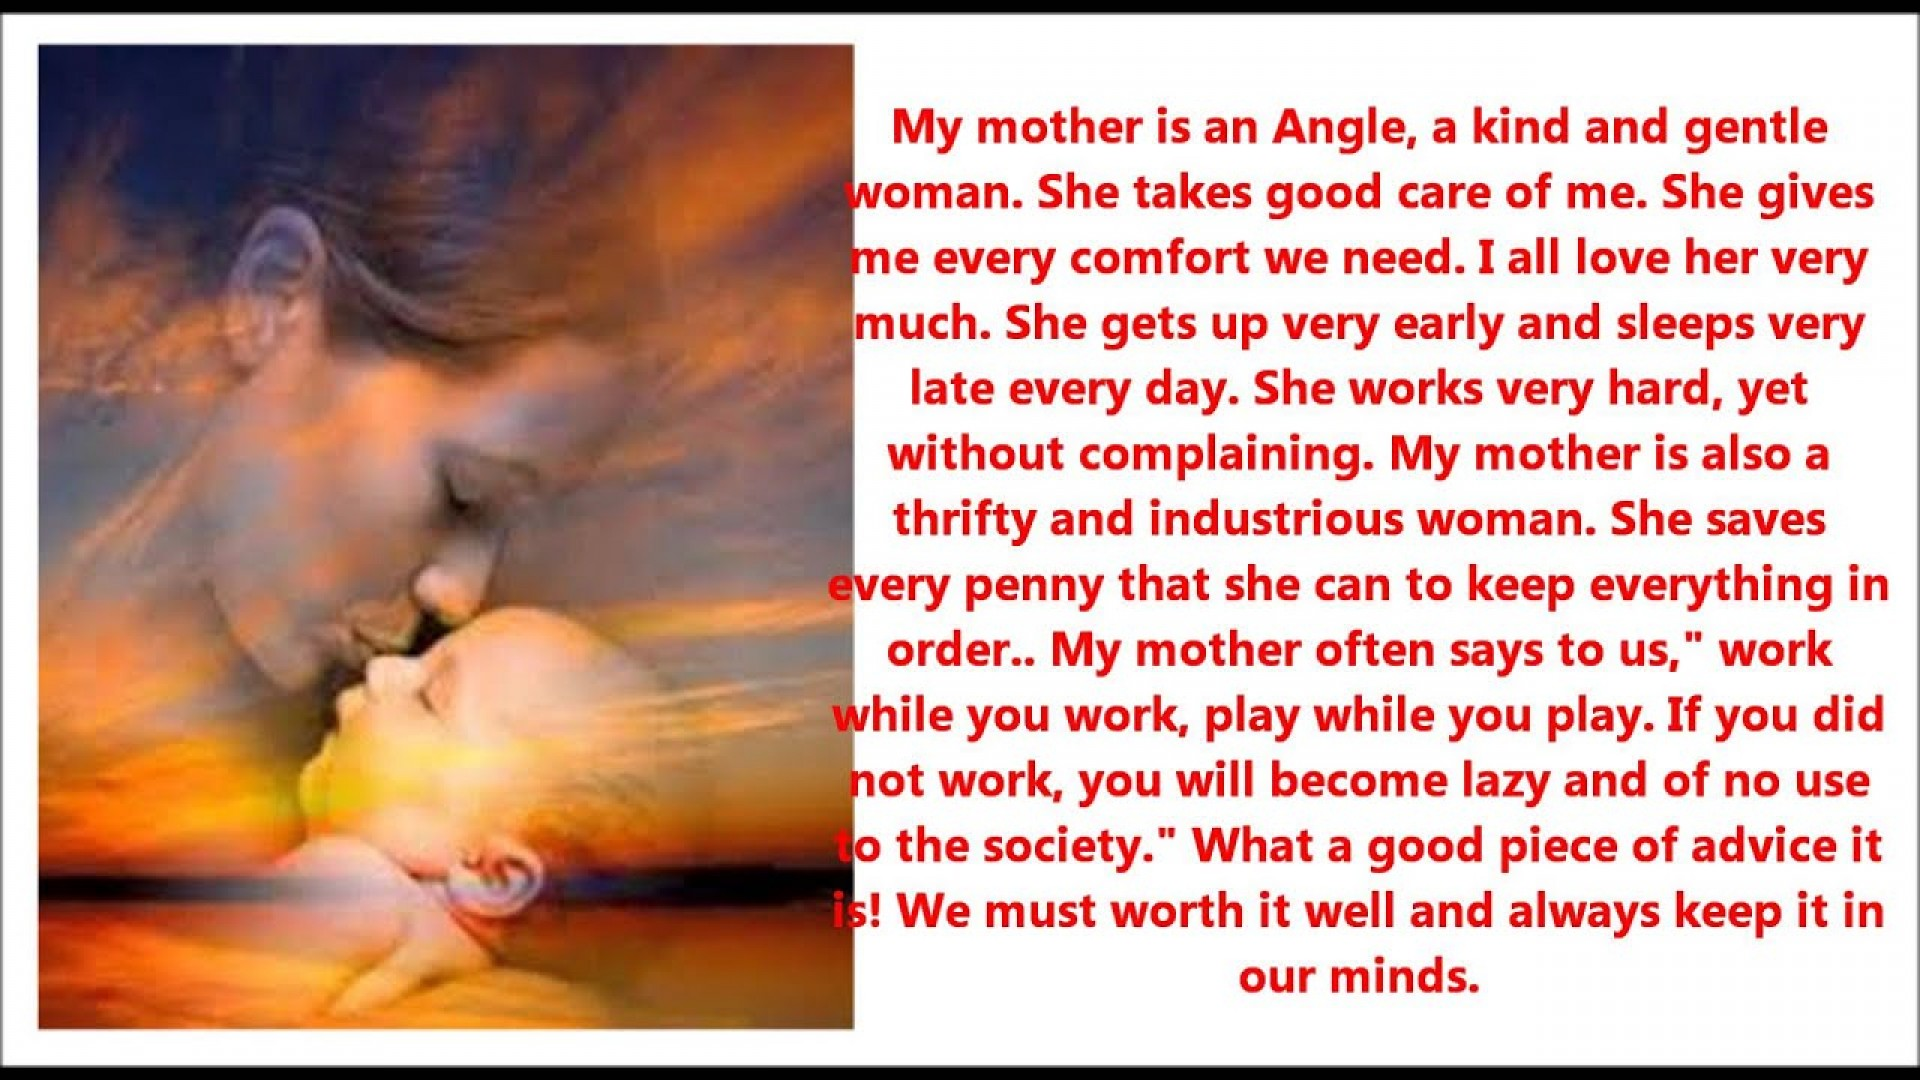 010 Essay About Mom Example Surprising My Being Role Model Moments With Friends Happy Family 1920